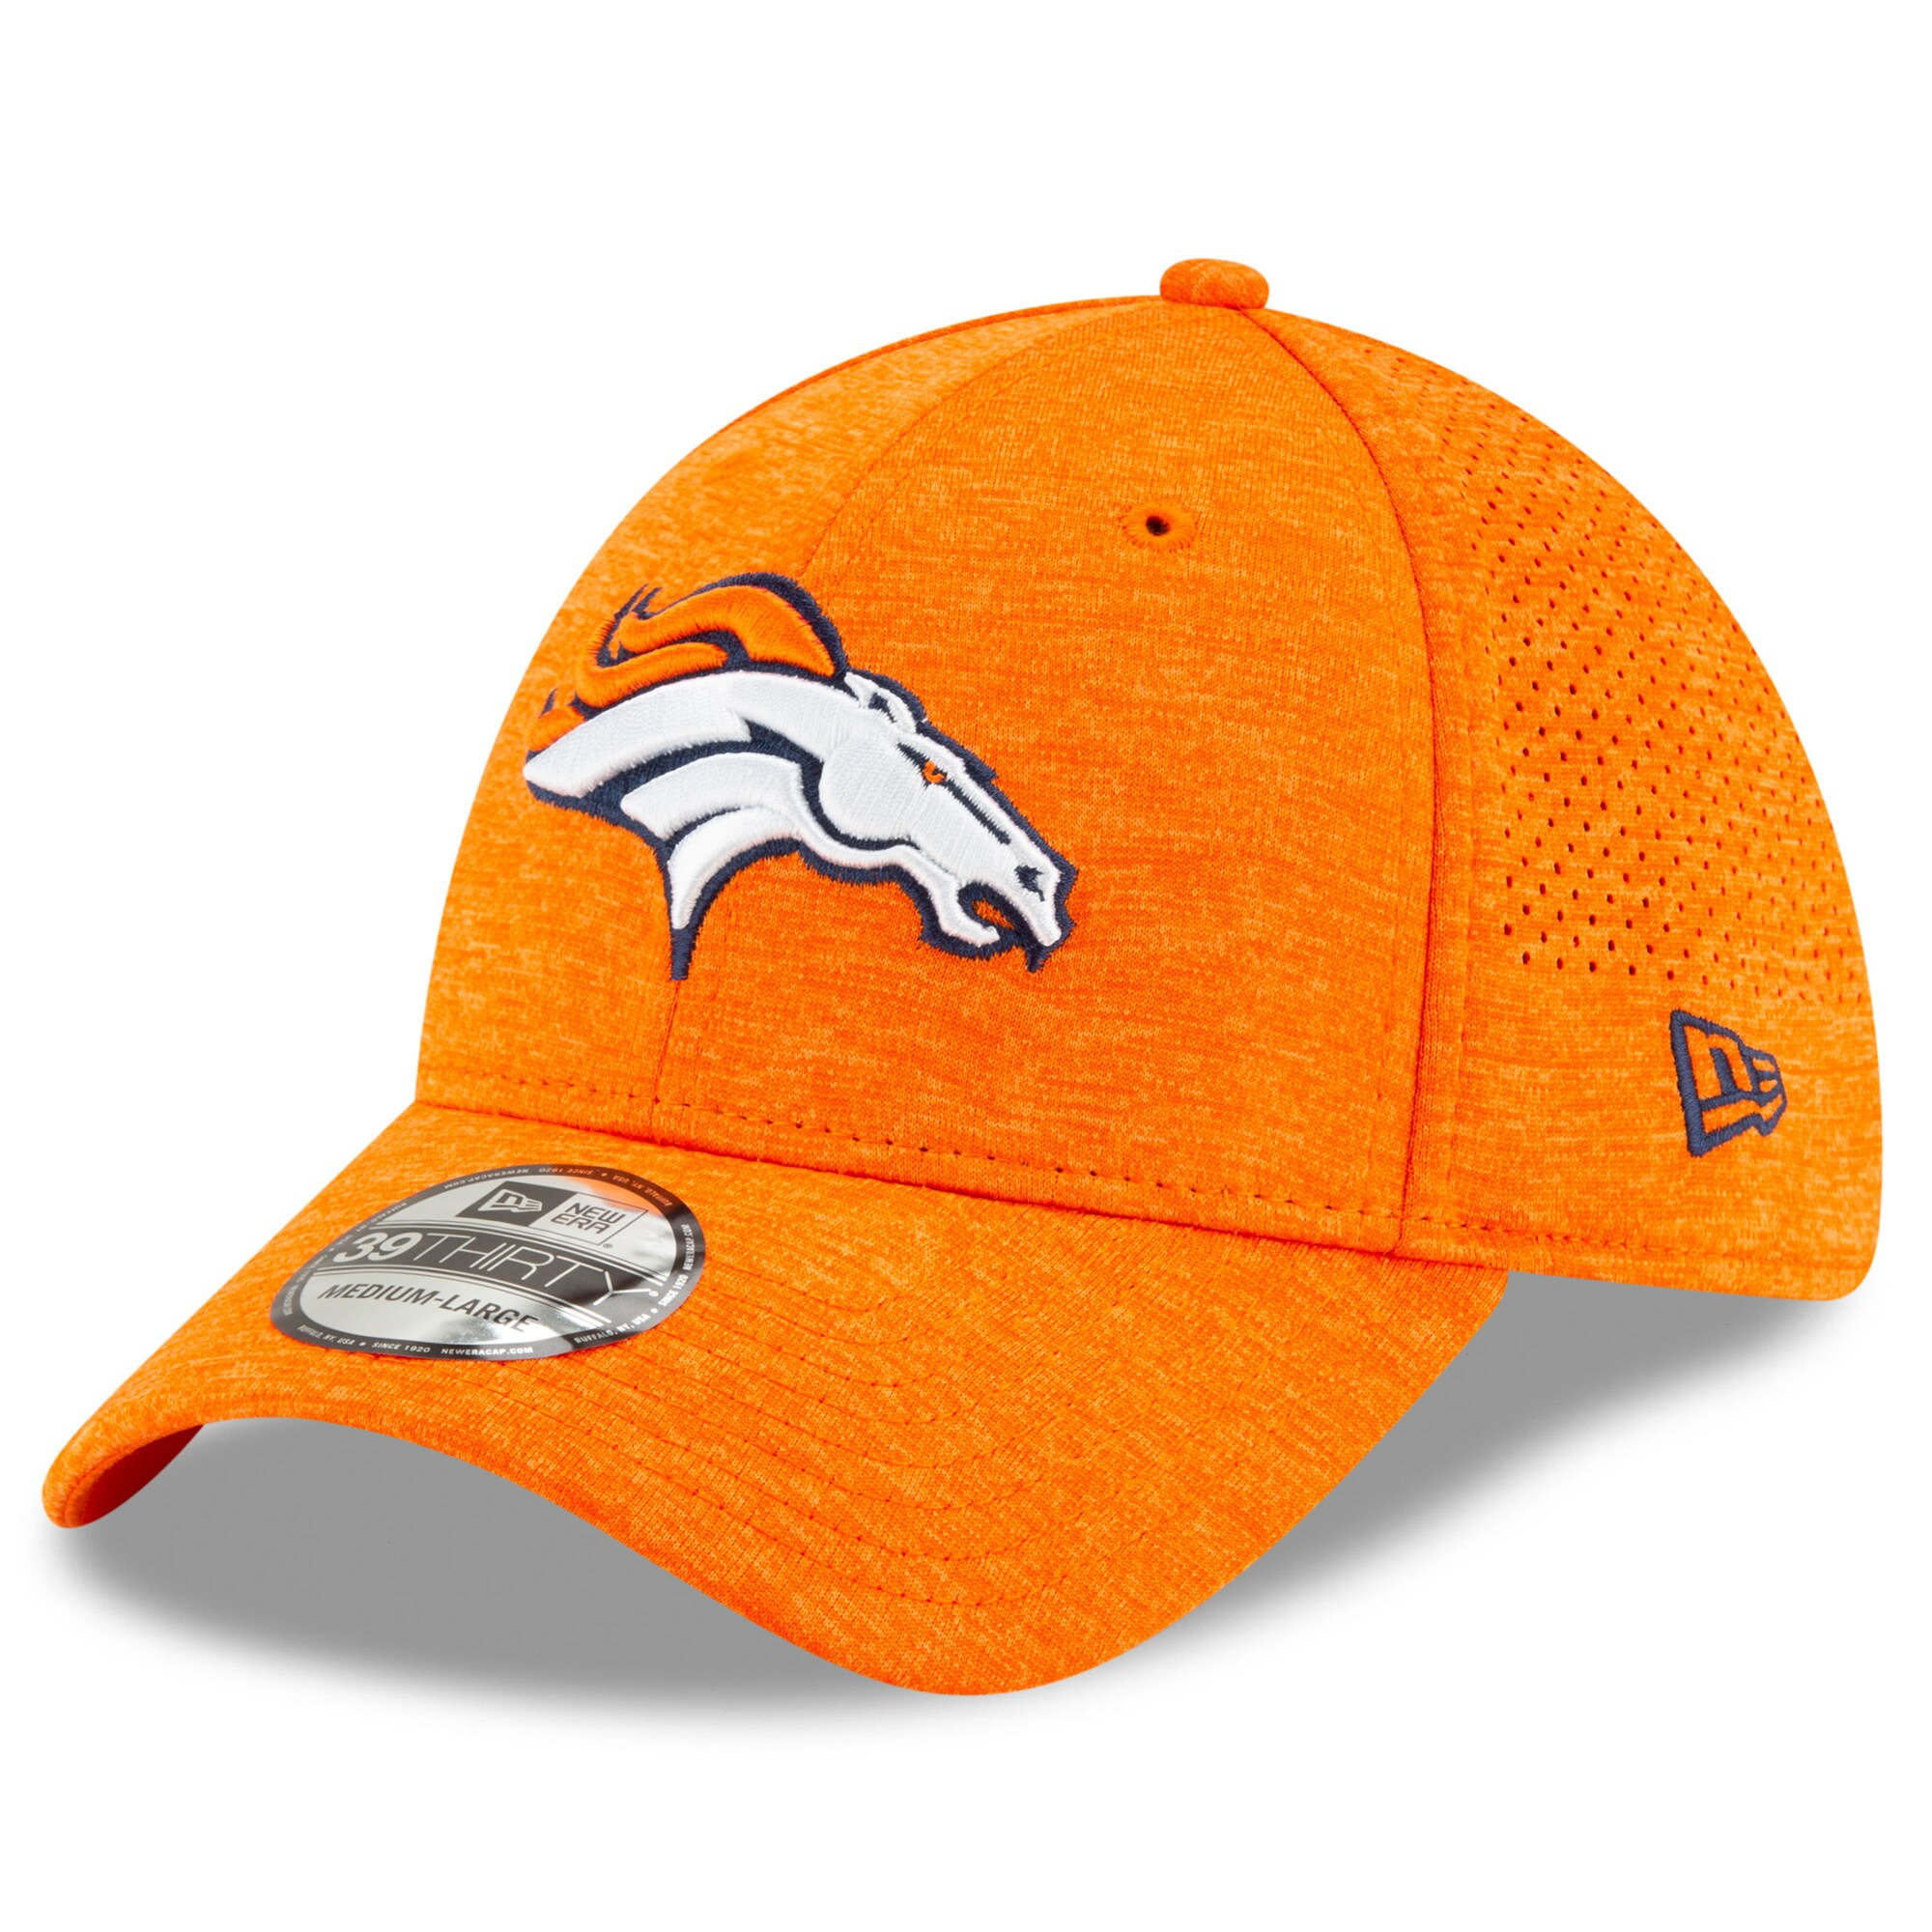 Denver Broncos New Era STH Perf 39THIRTY Flex Hat - Orange